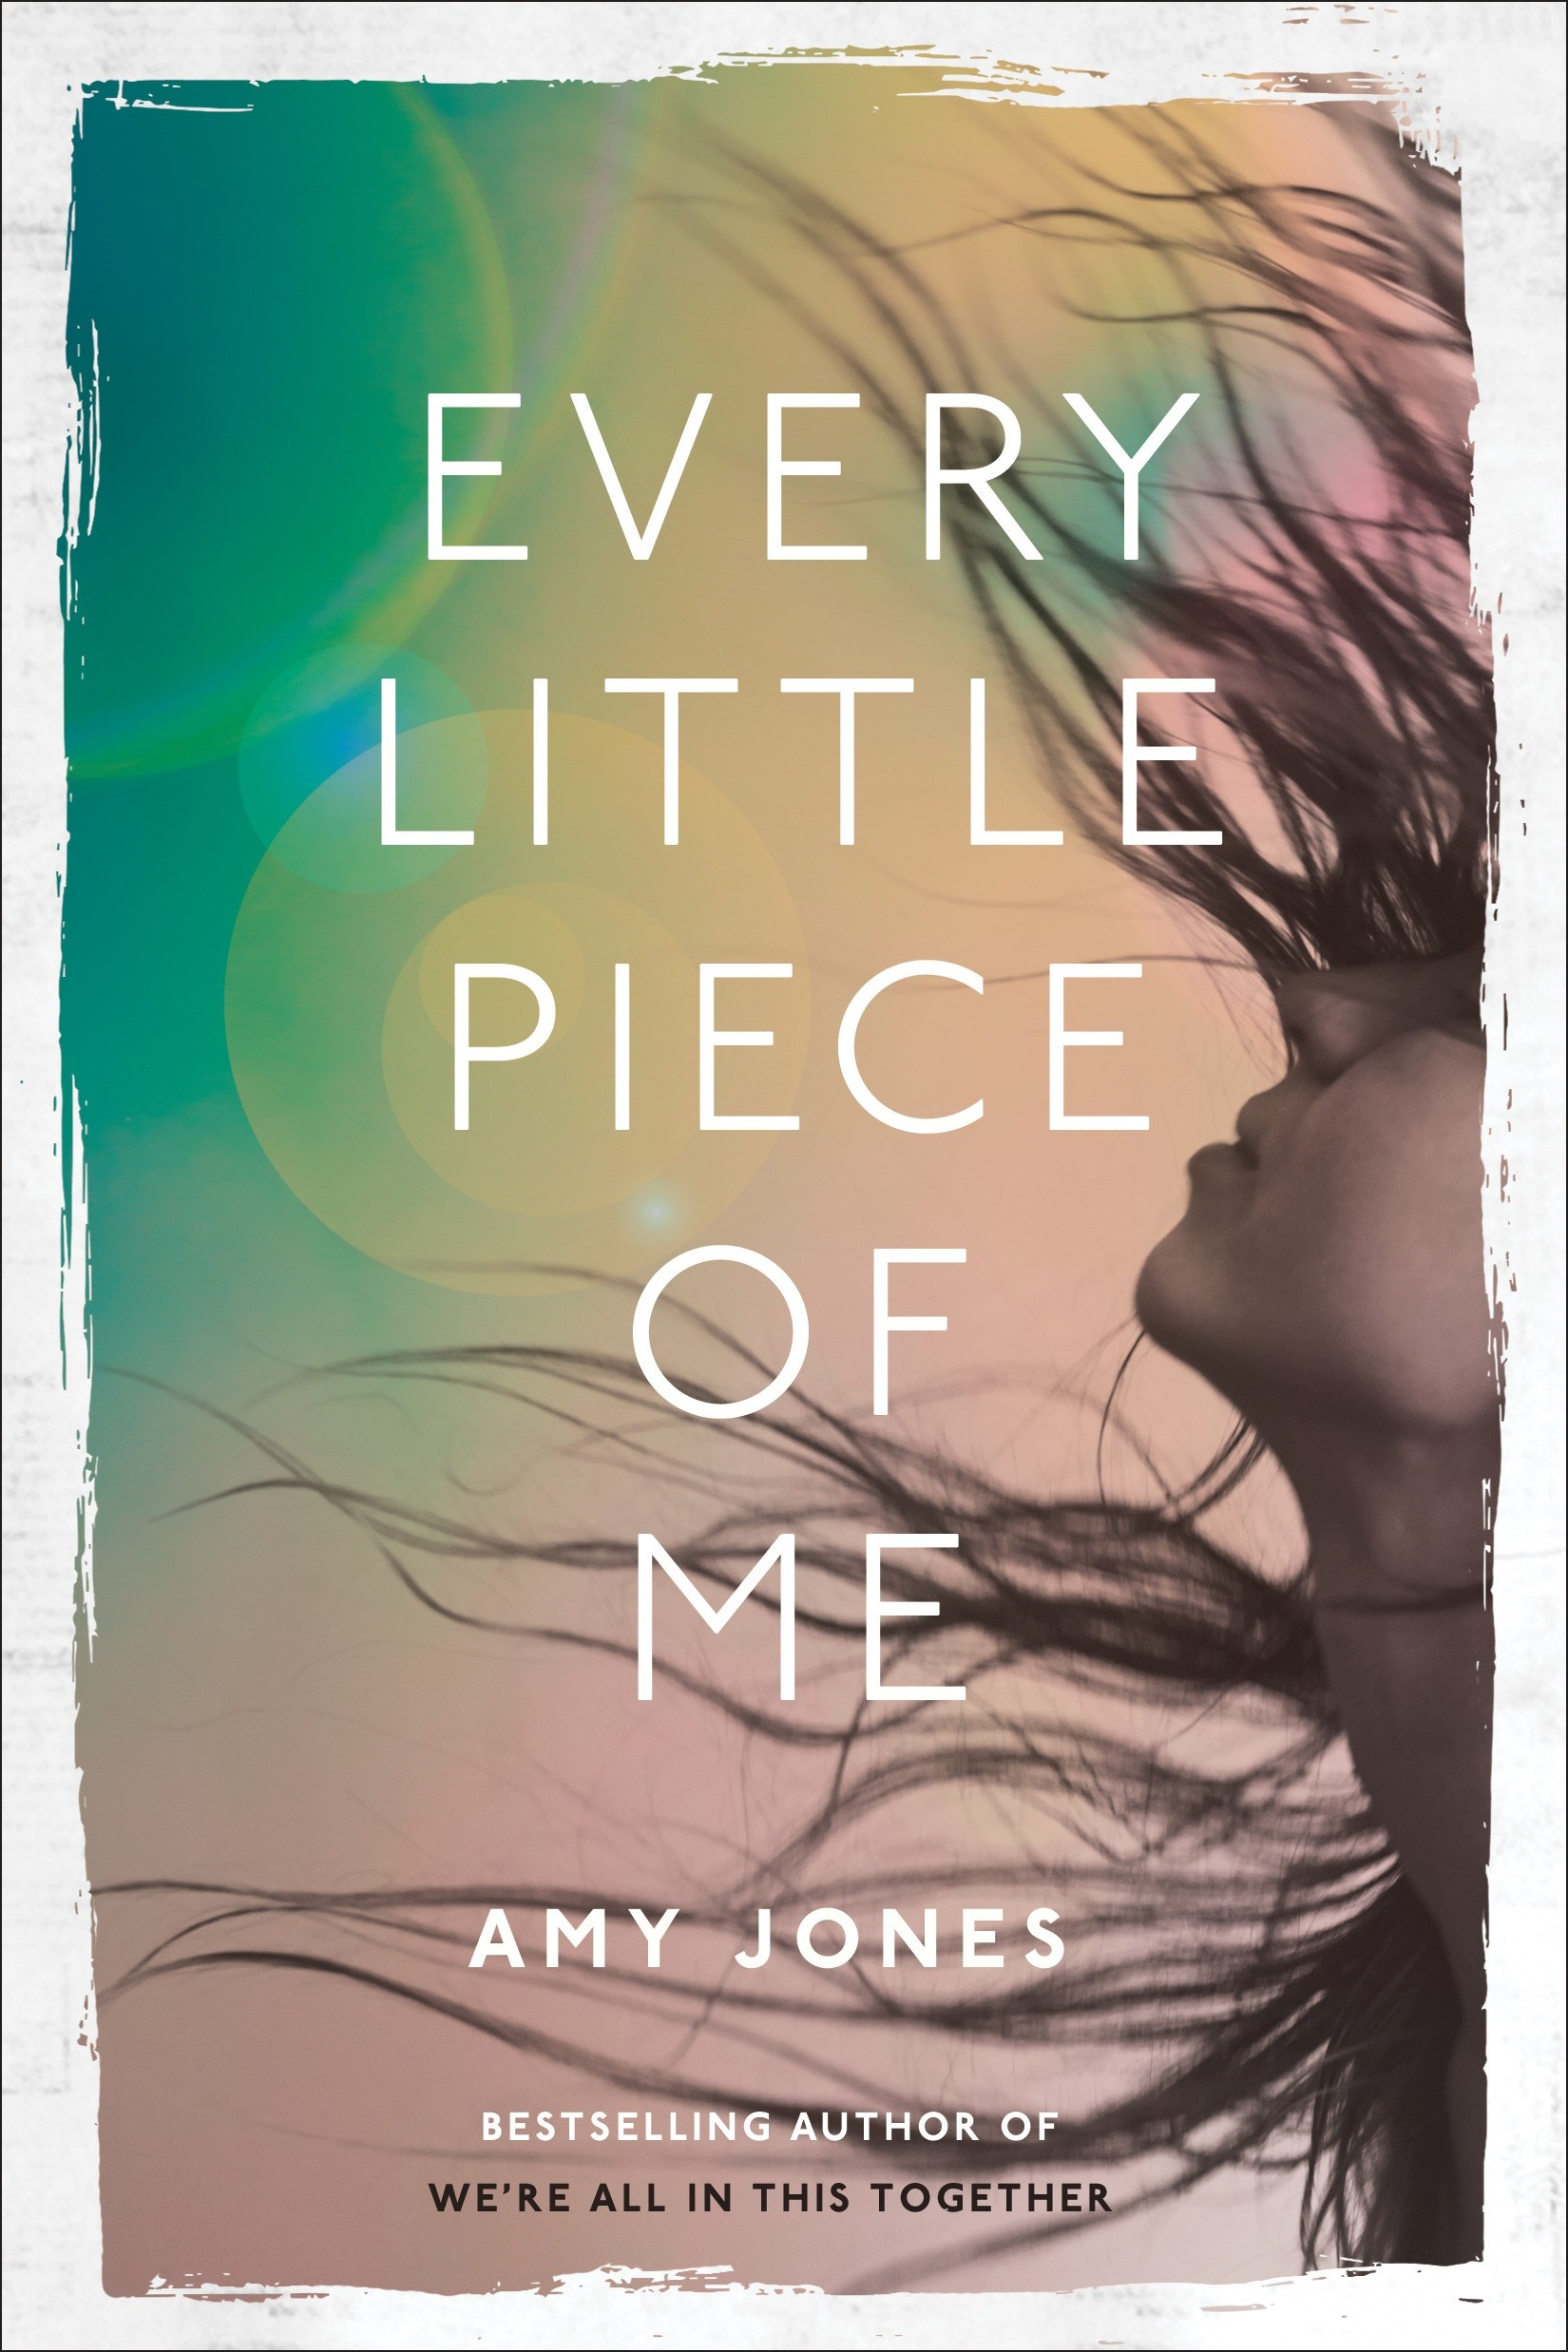 Jones, Amy - Every Little Piece of Me - Cover.jpg